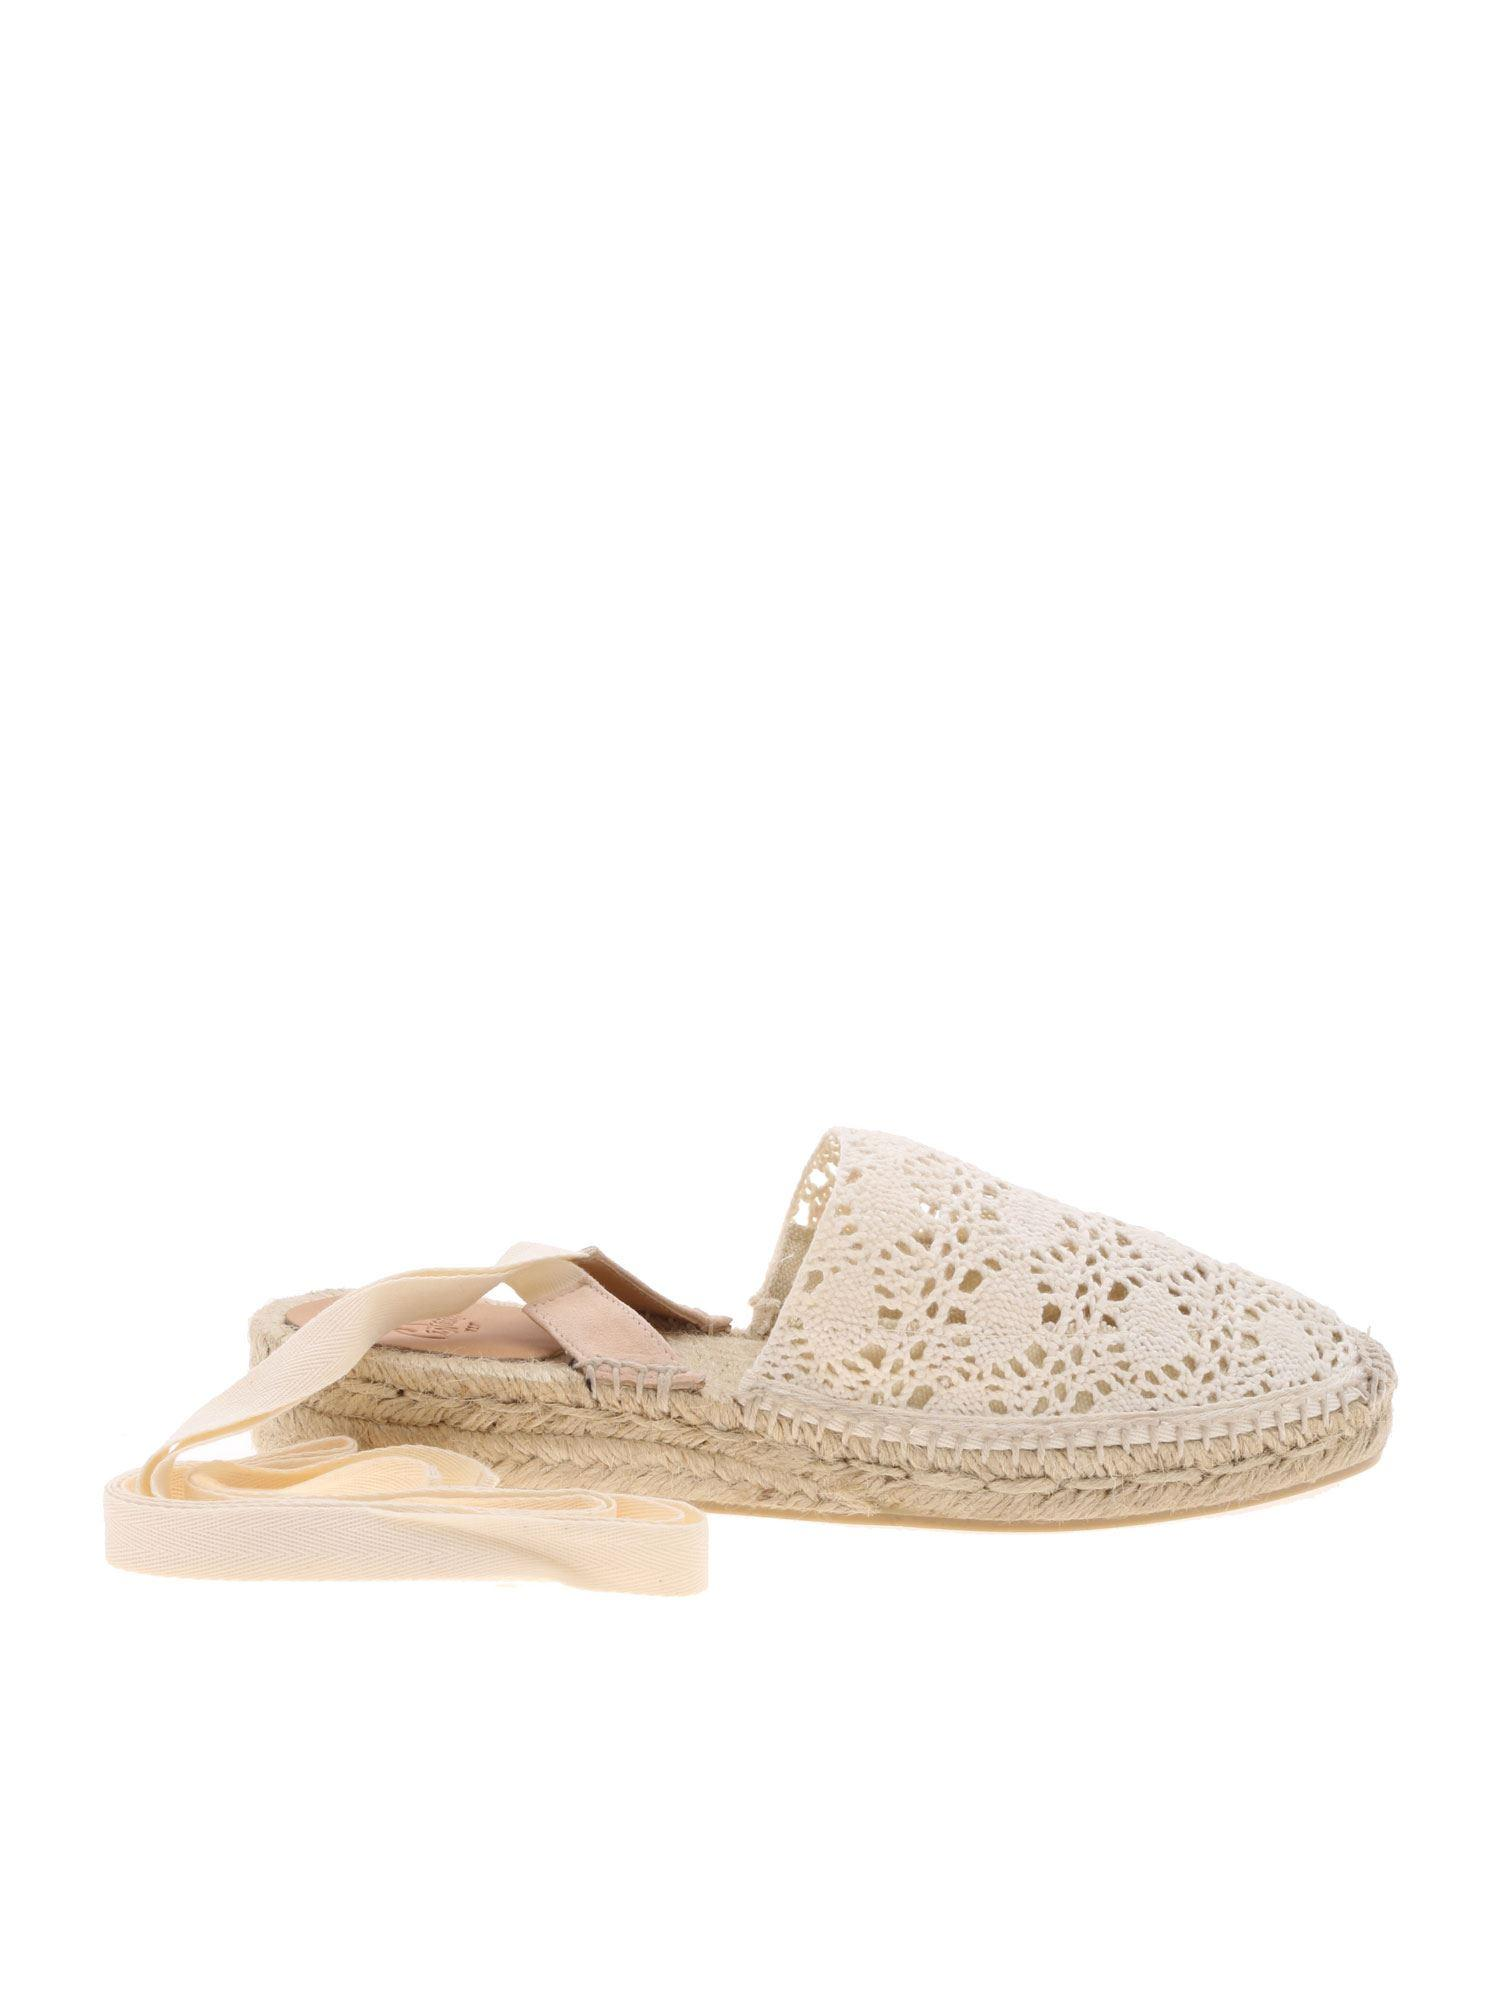 4b98c016024f Castaner Gabe Espadrilles In Lace In Ivory Color in White - Lyst